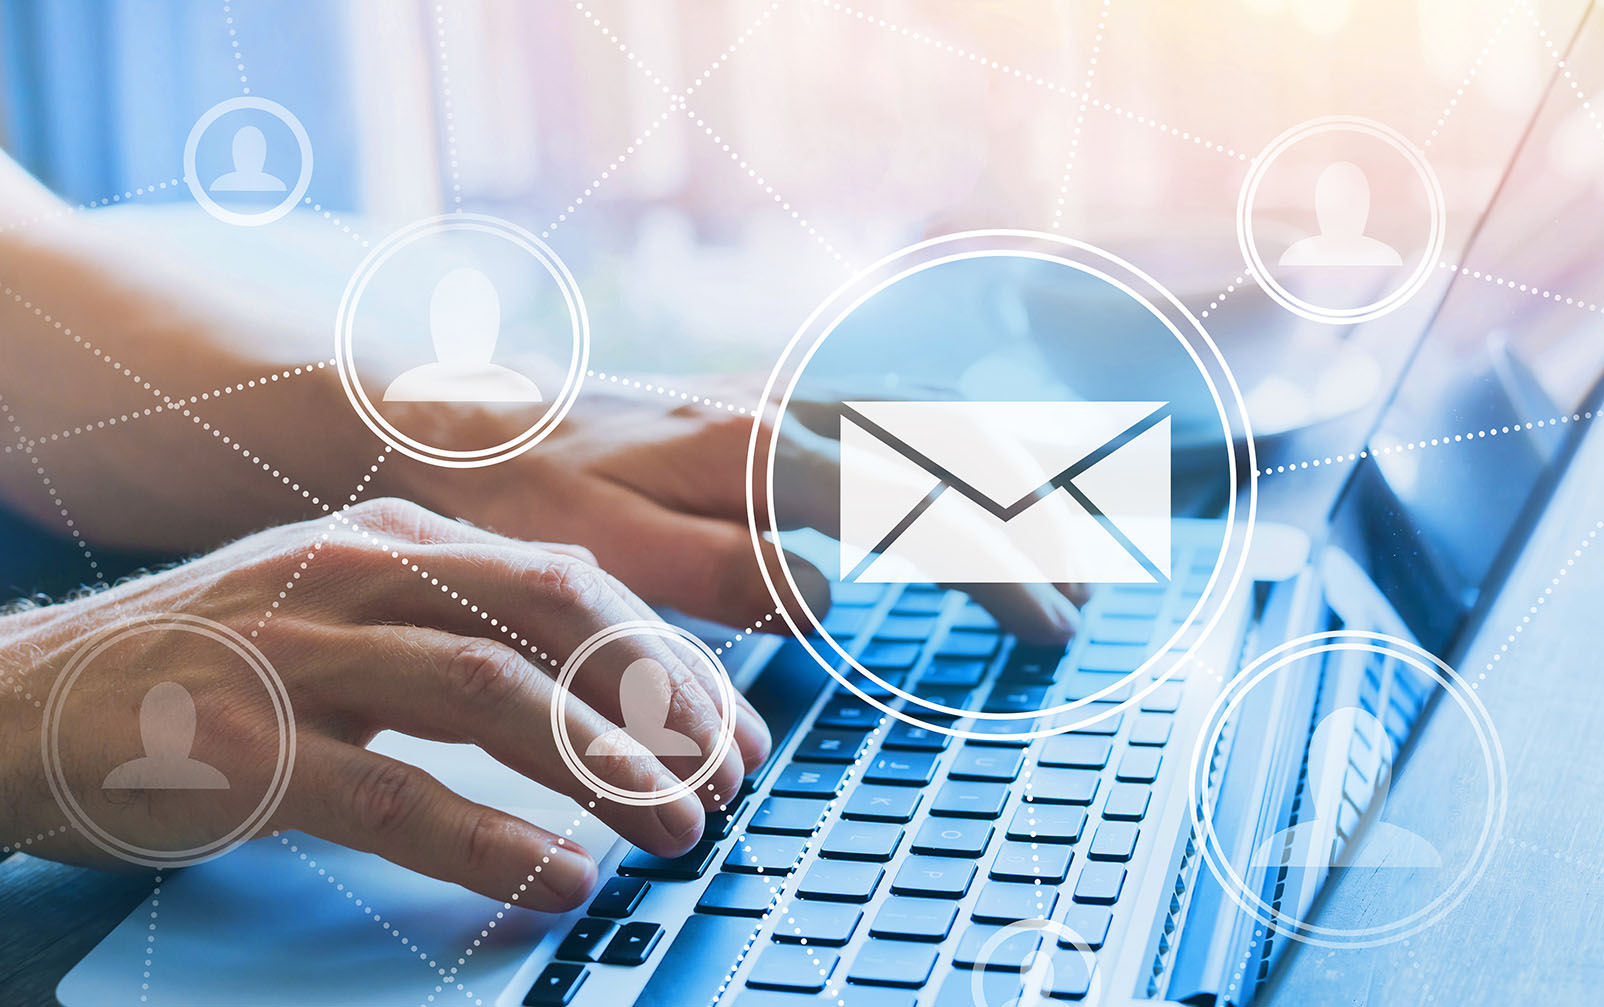 Email marketing is a workhorse for Demand Generation